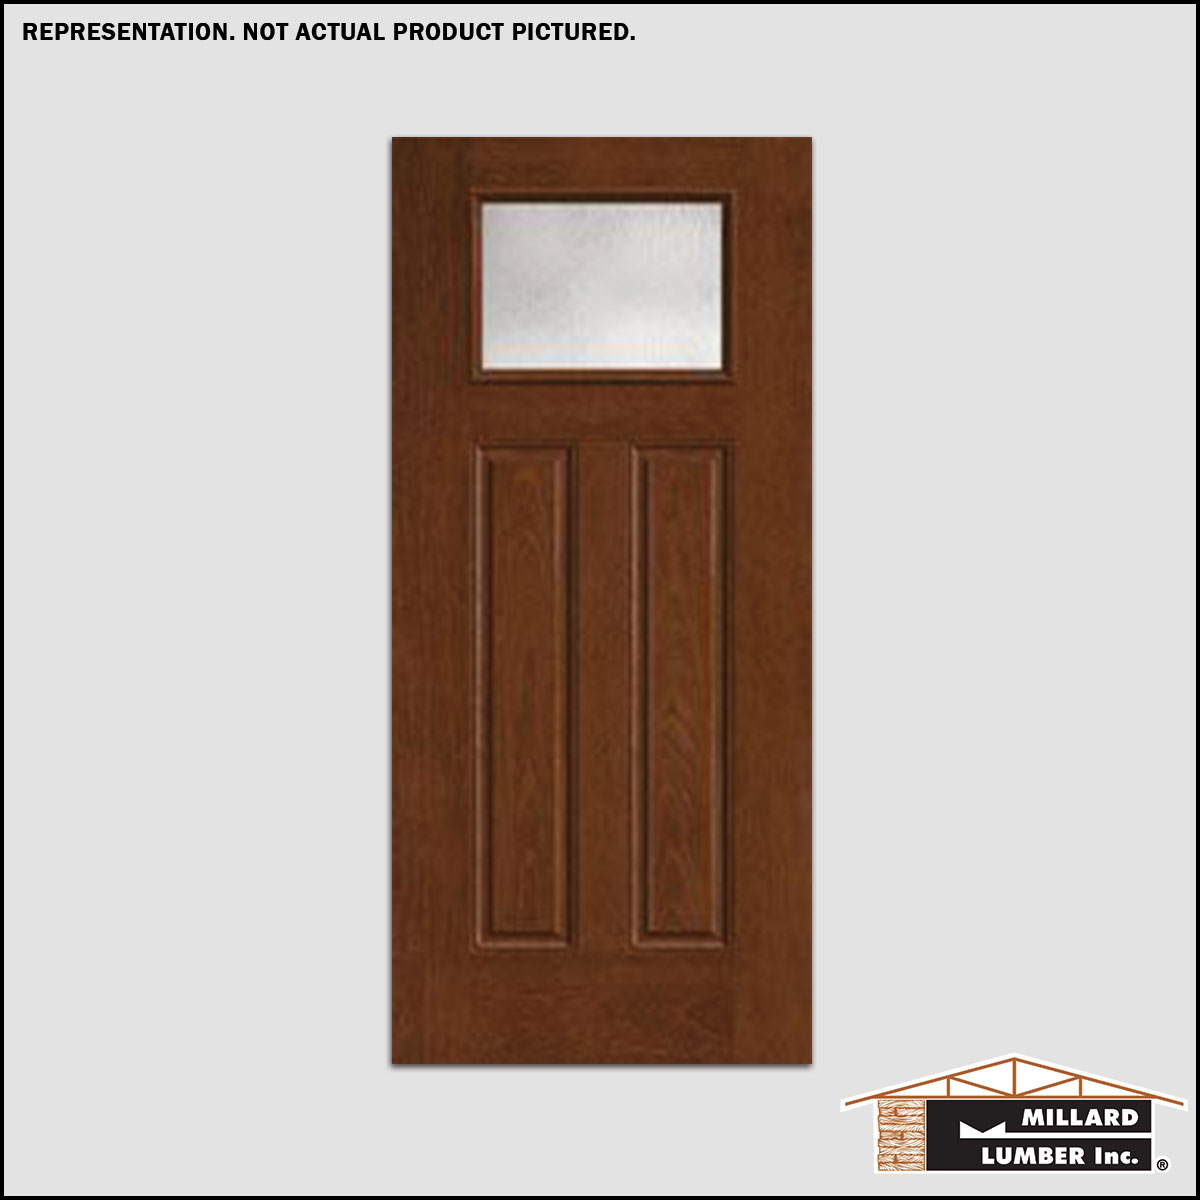 Clearance products more than lumber millard lumber for Single glass exterior door